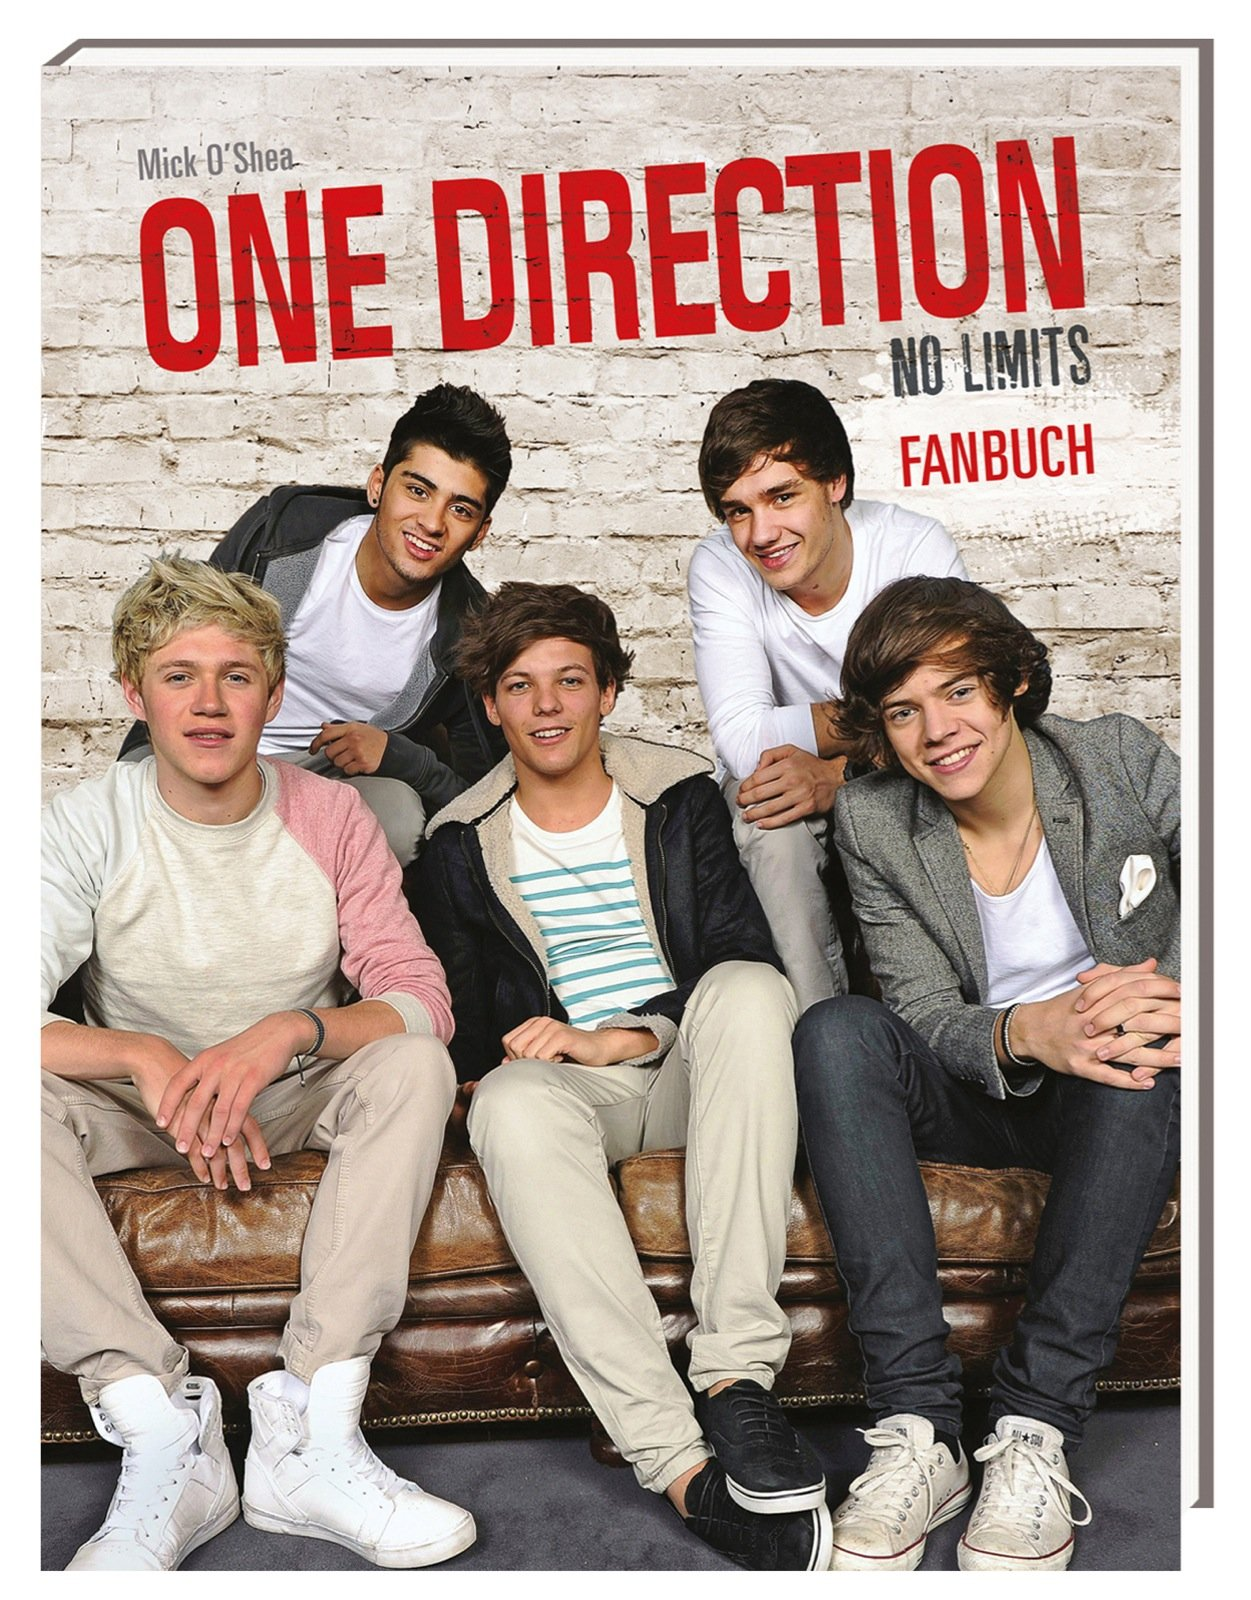 One Direction: Fanbuch